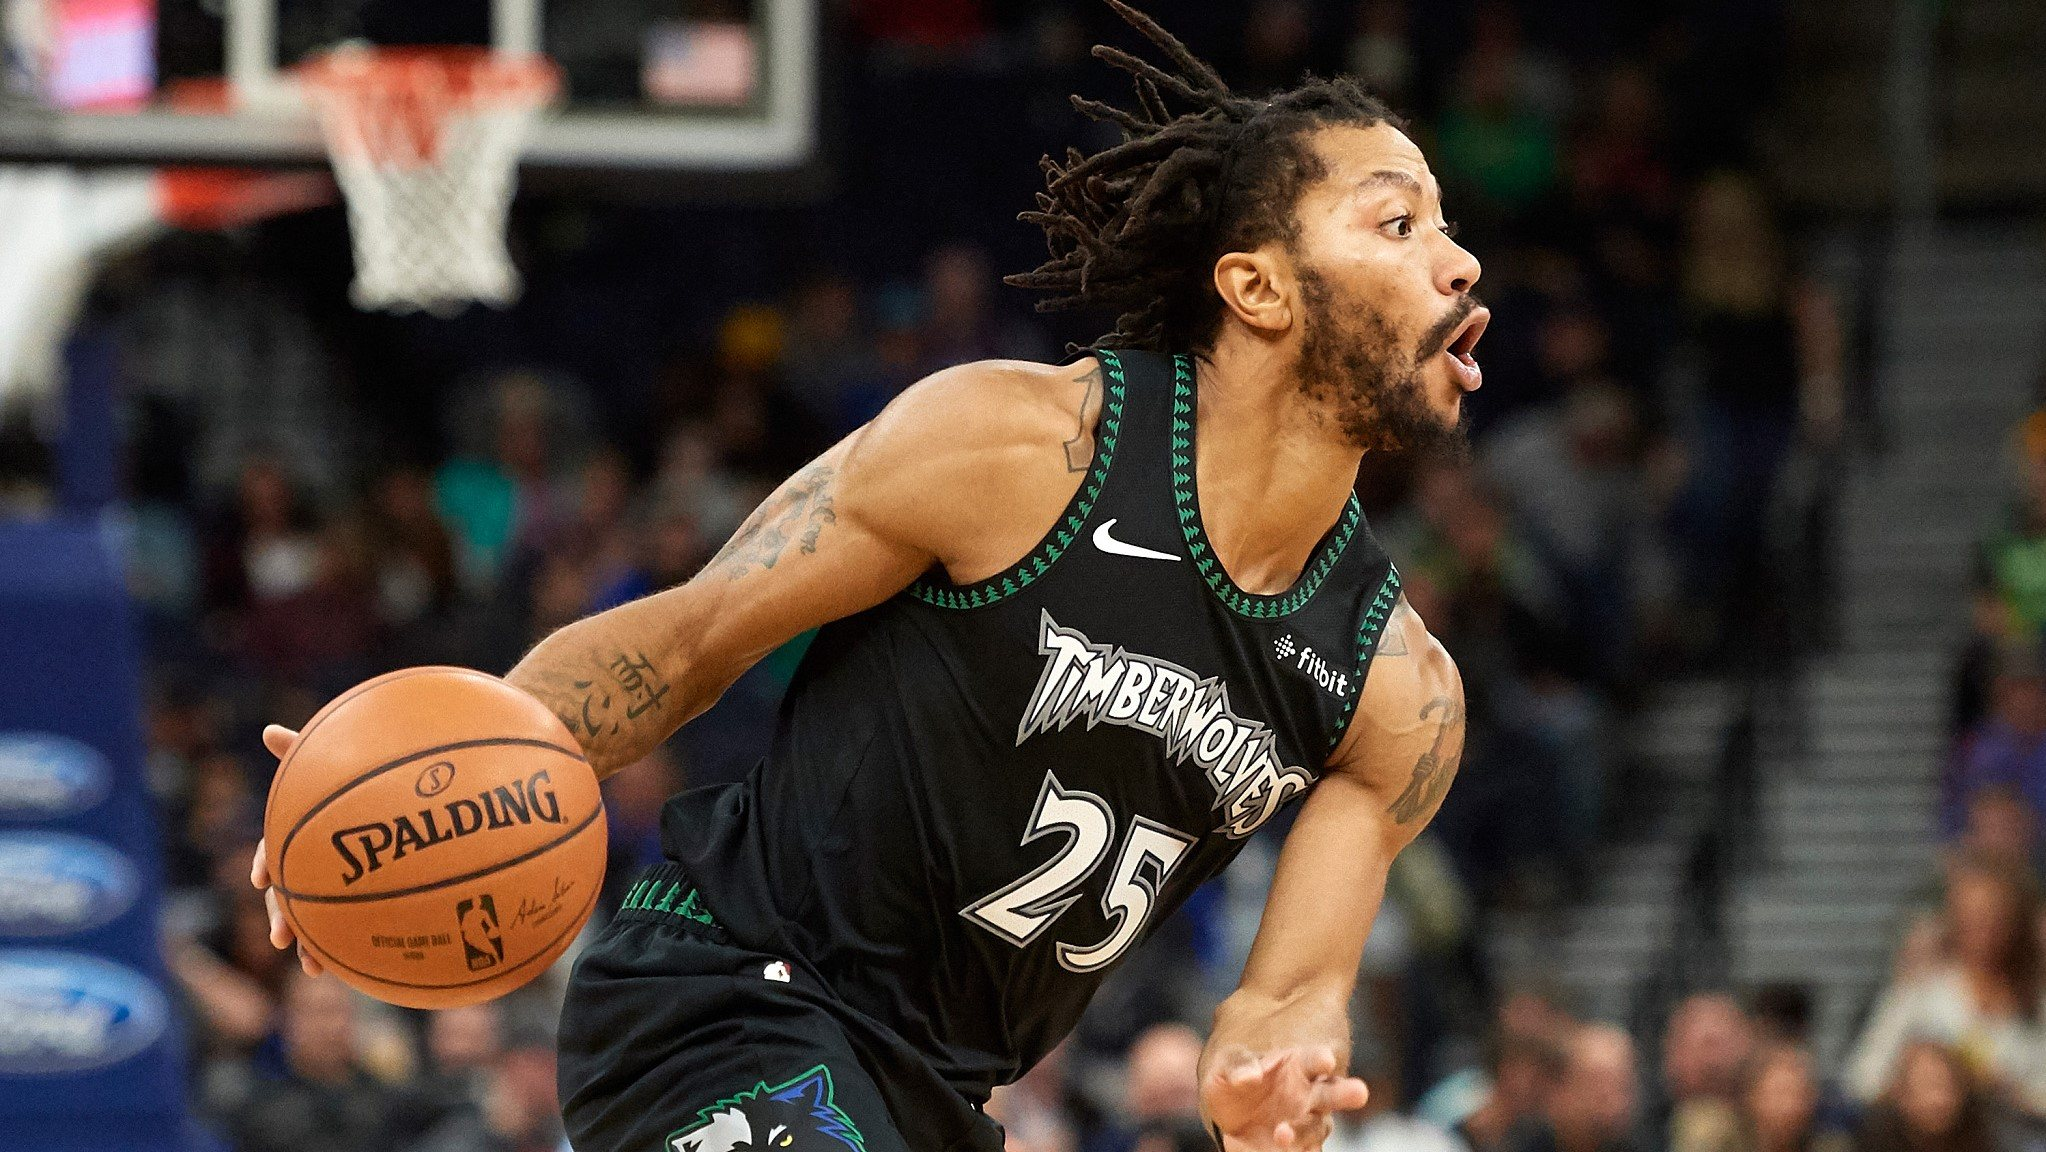 bb7799a1 NBA highlights on Oct. 31: Rose erupts for 50-point game against Utah.  Copied. Li Xiang. QR. Minnesota's Derrick Rose had the best night of his  career on ...